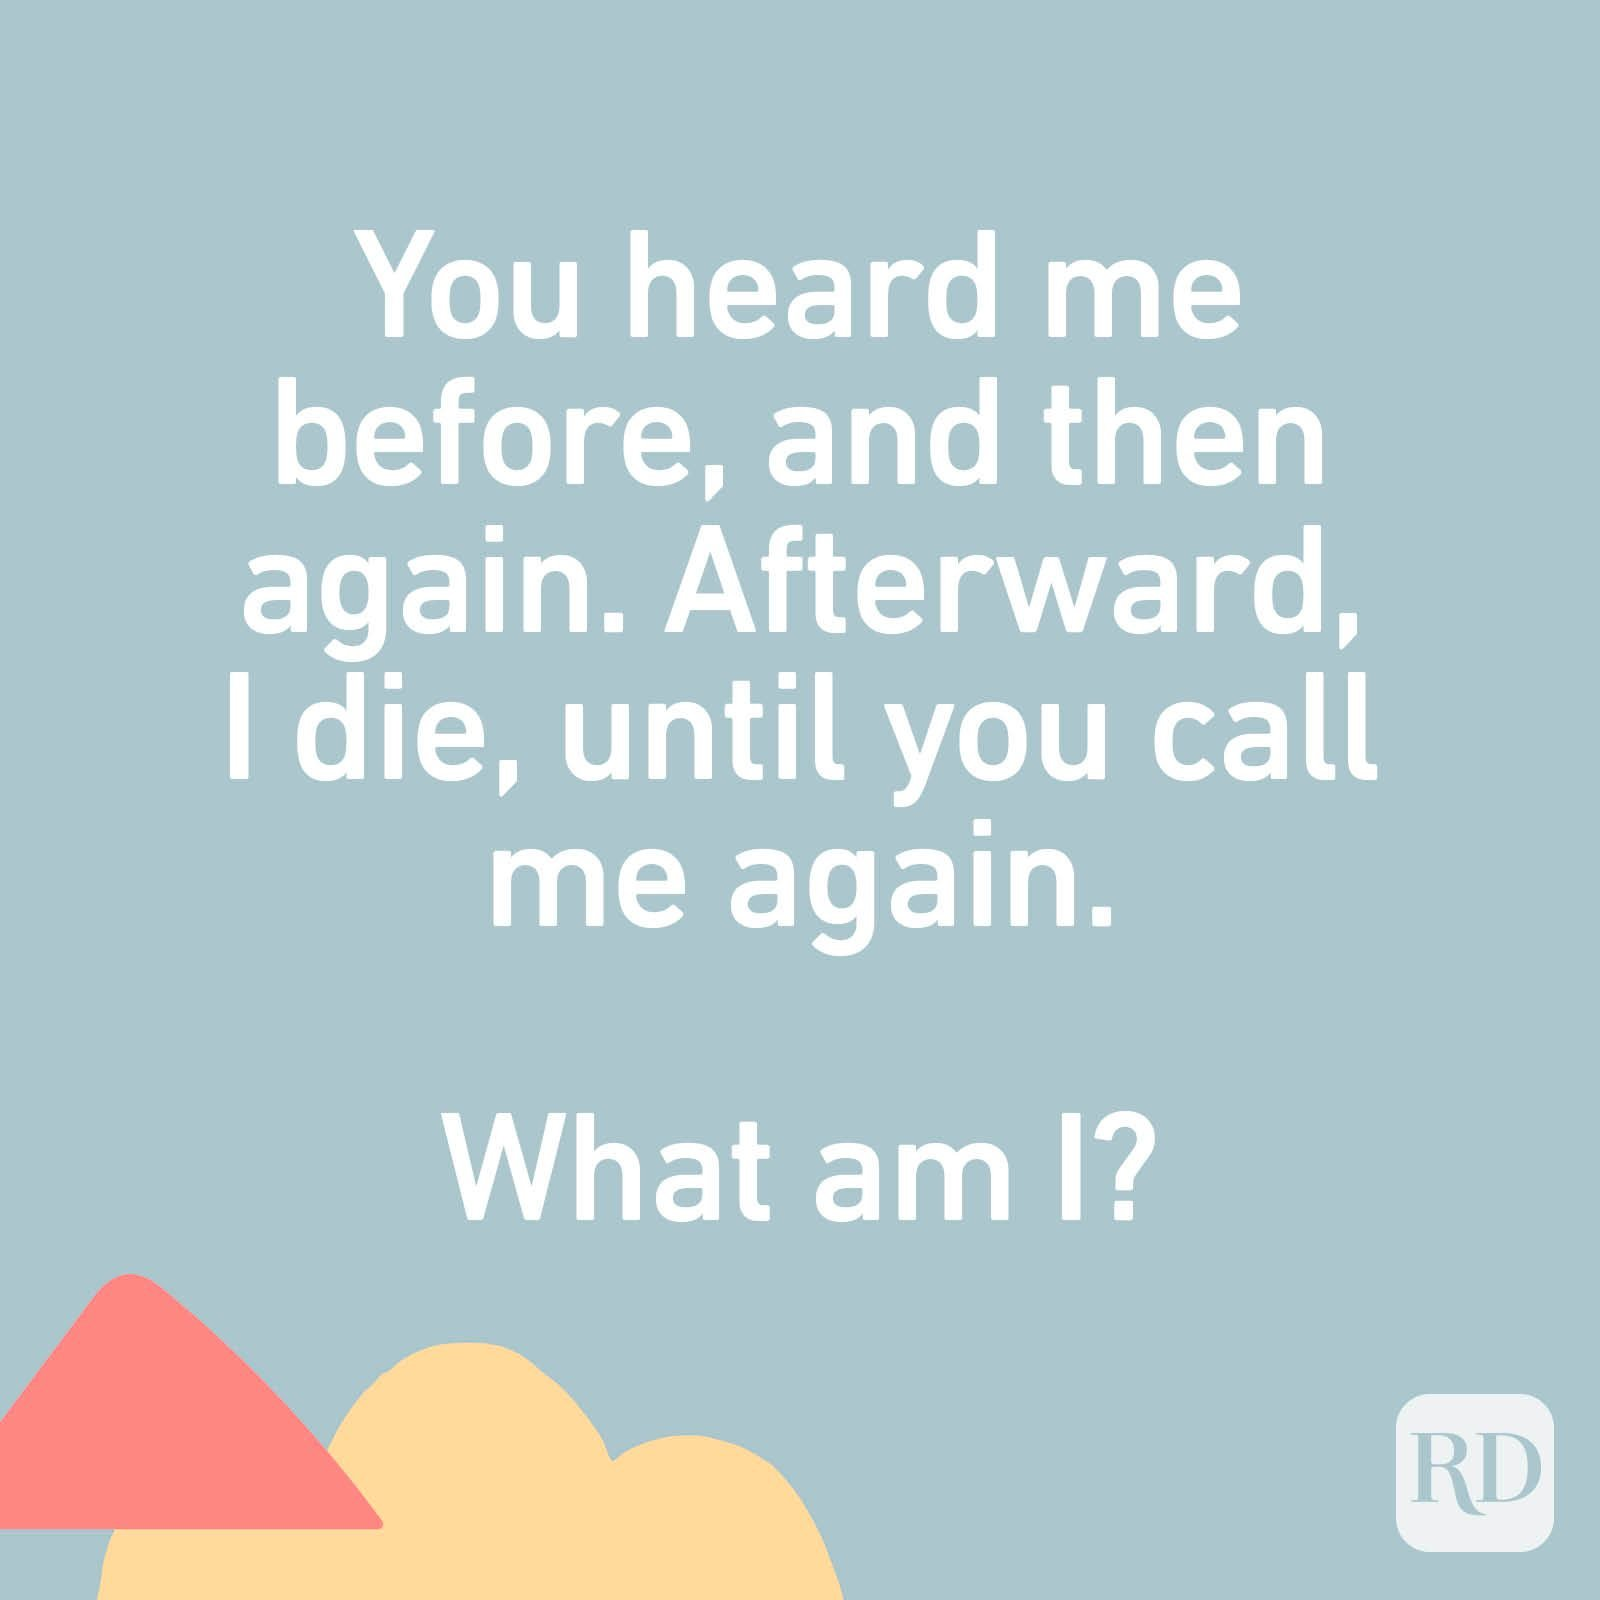 You heard me before, and then again. Afterward, I die, until you call me again. What am I?